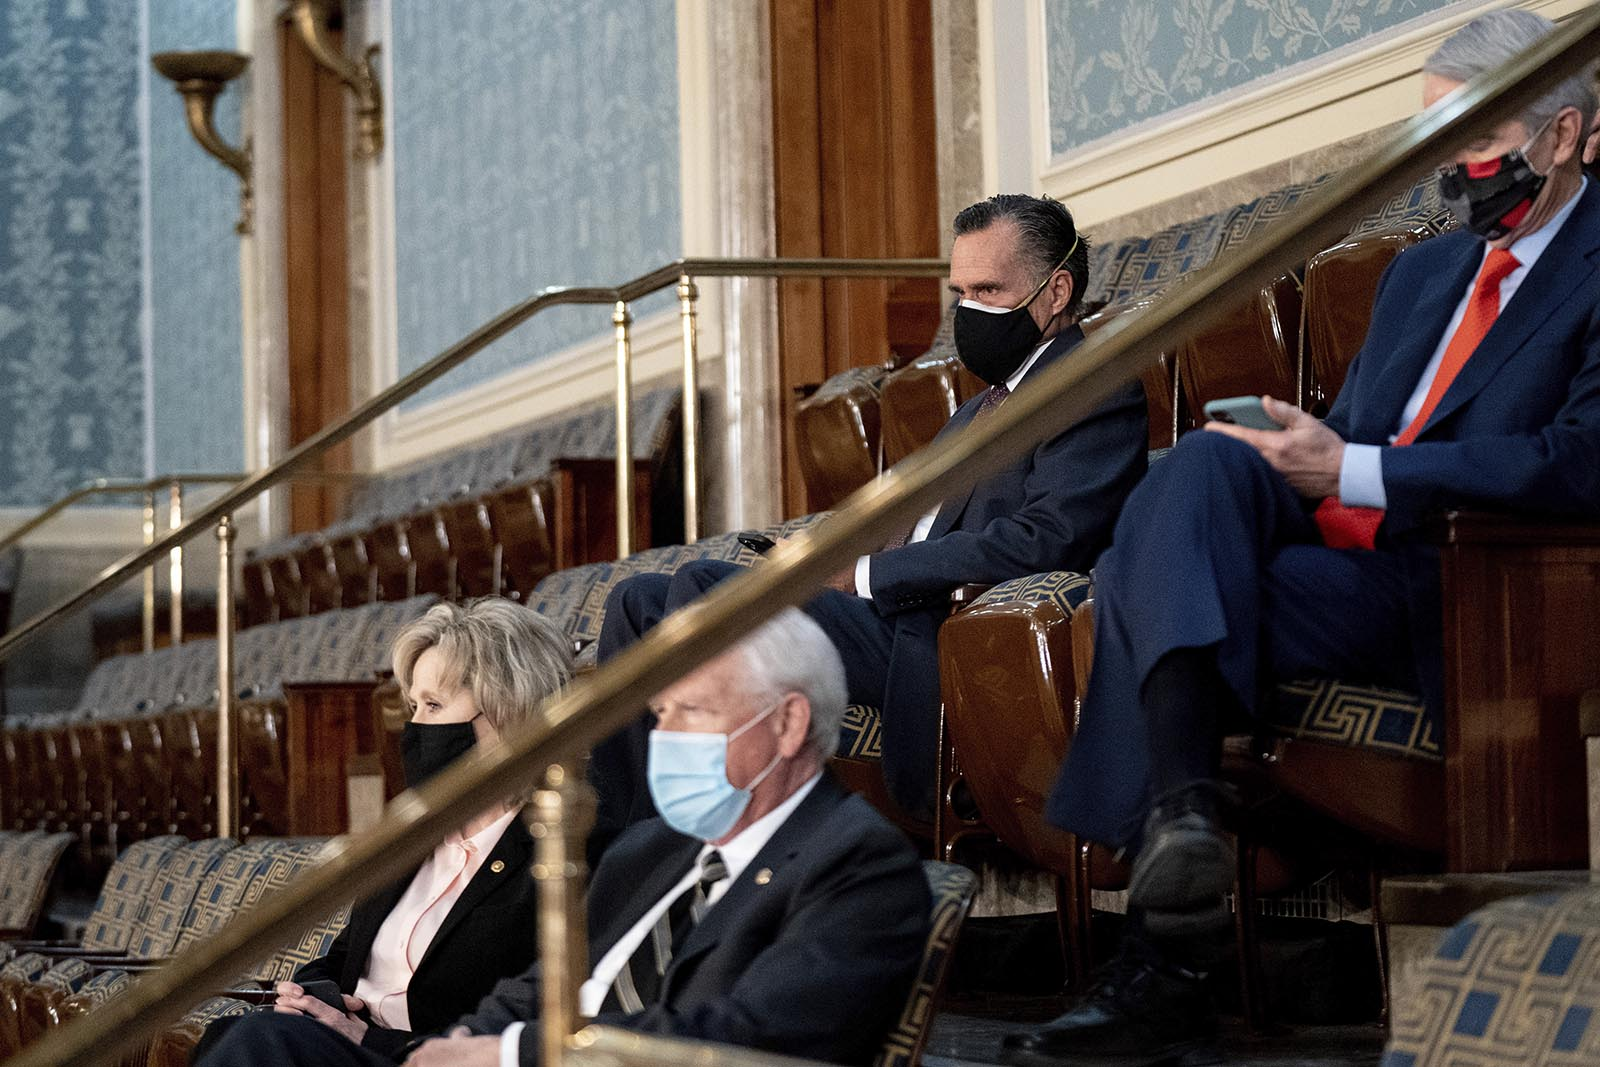 Sen. Mitt Romney of Utah watches as a joint session of the House and Senate convenes to confirm the Electoral College votes cast in November's election, at the Capitol in Washington on Wednesday, January 6.